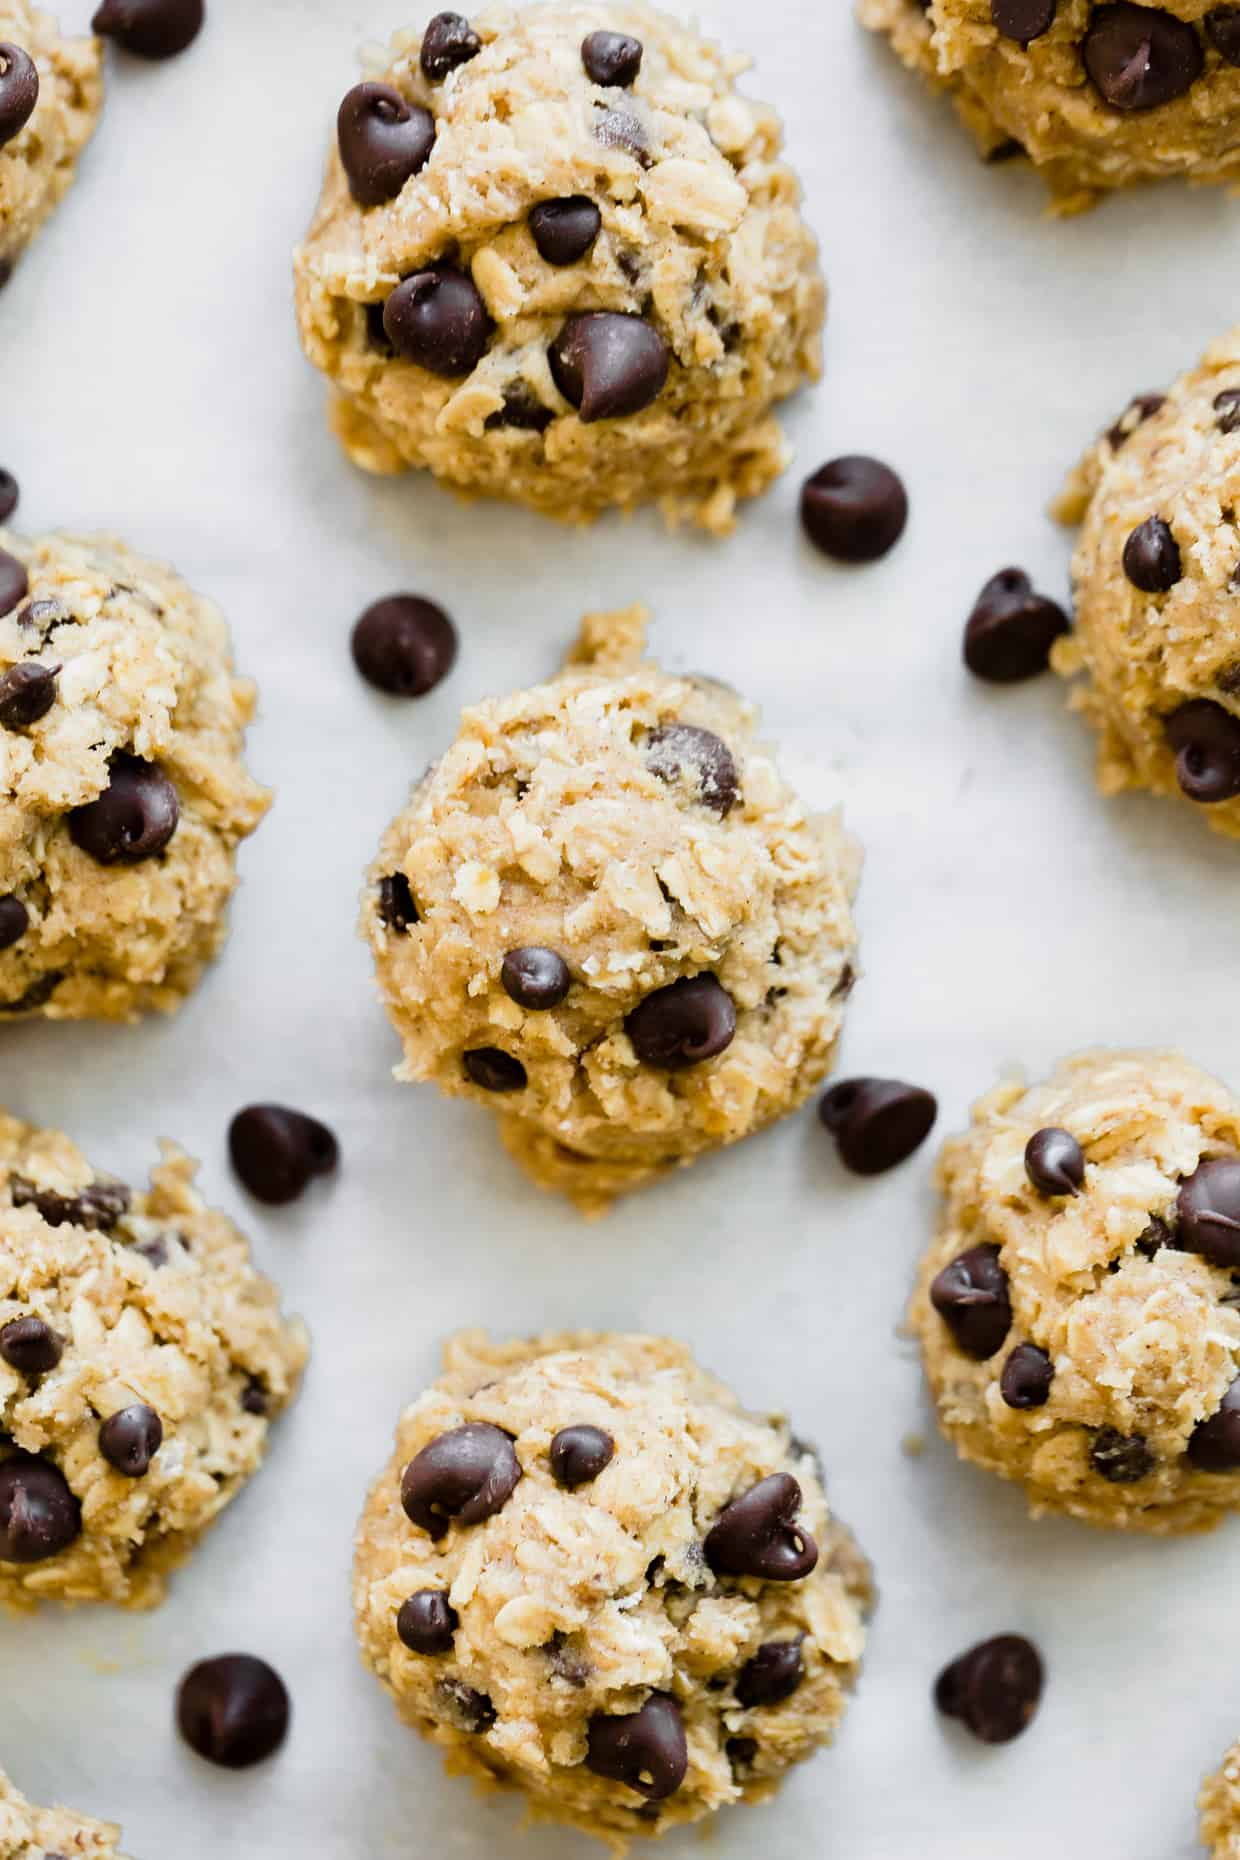 Oatmeal chocolate chip cookie dough rolled into small balls.